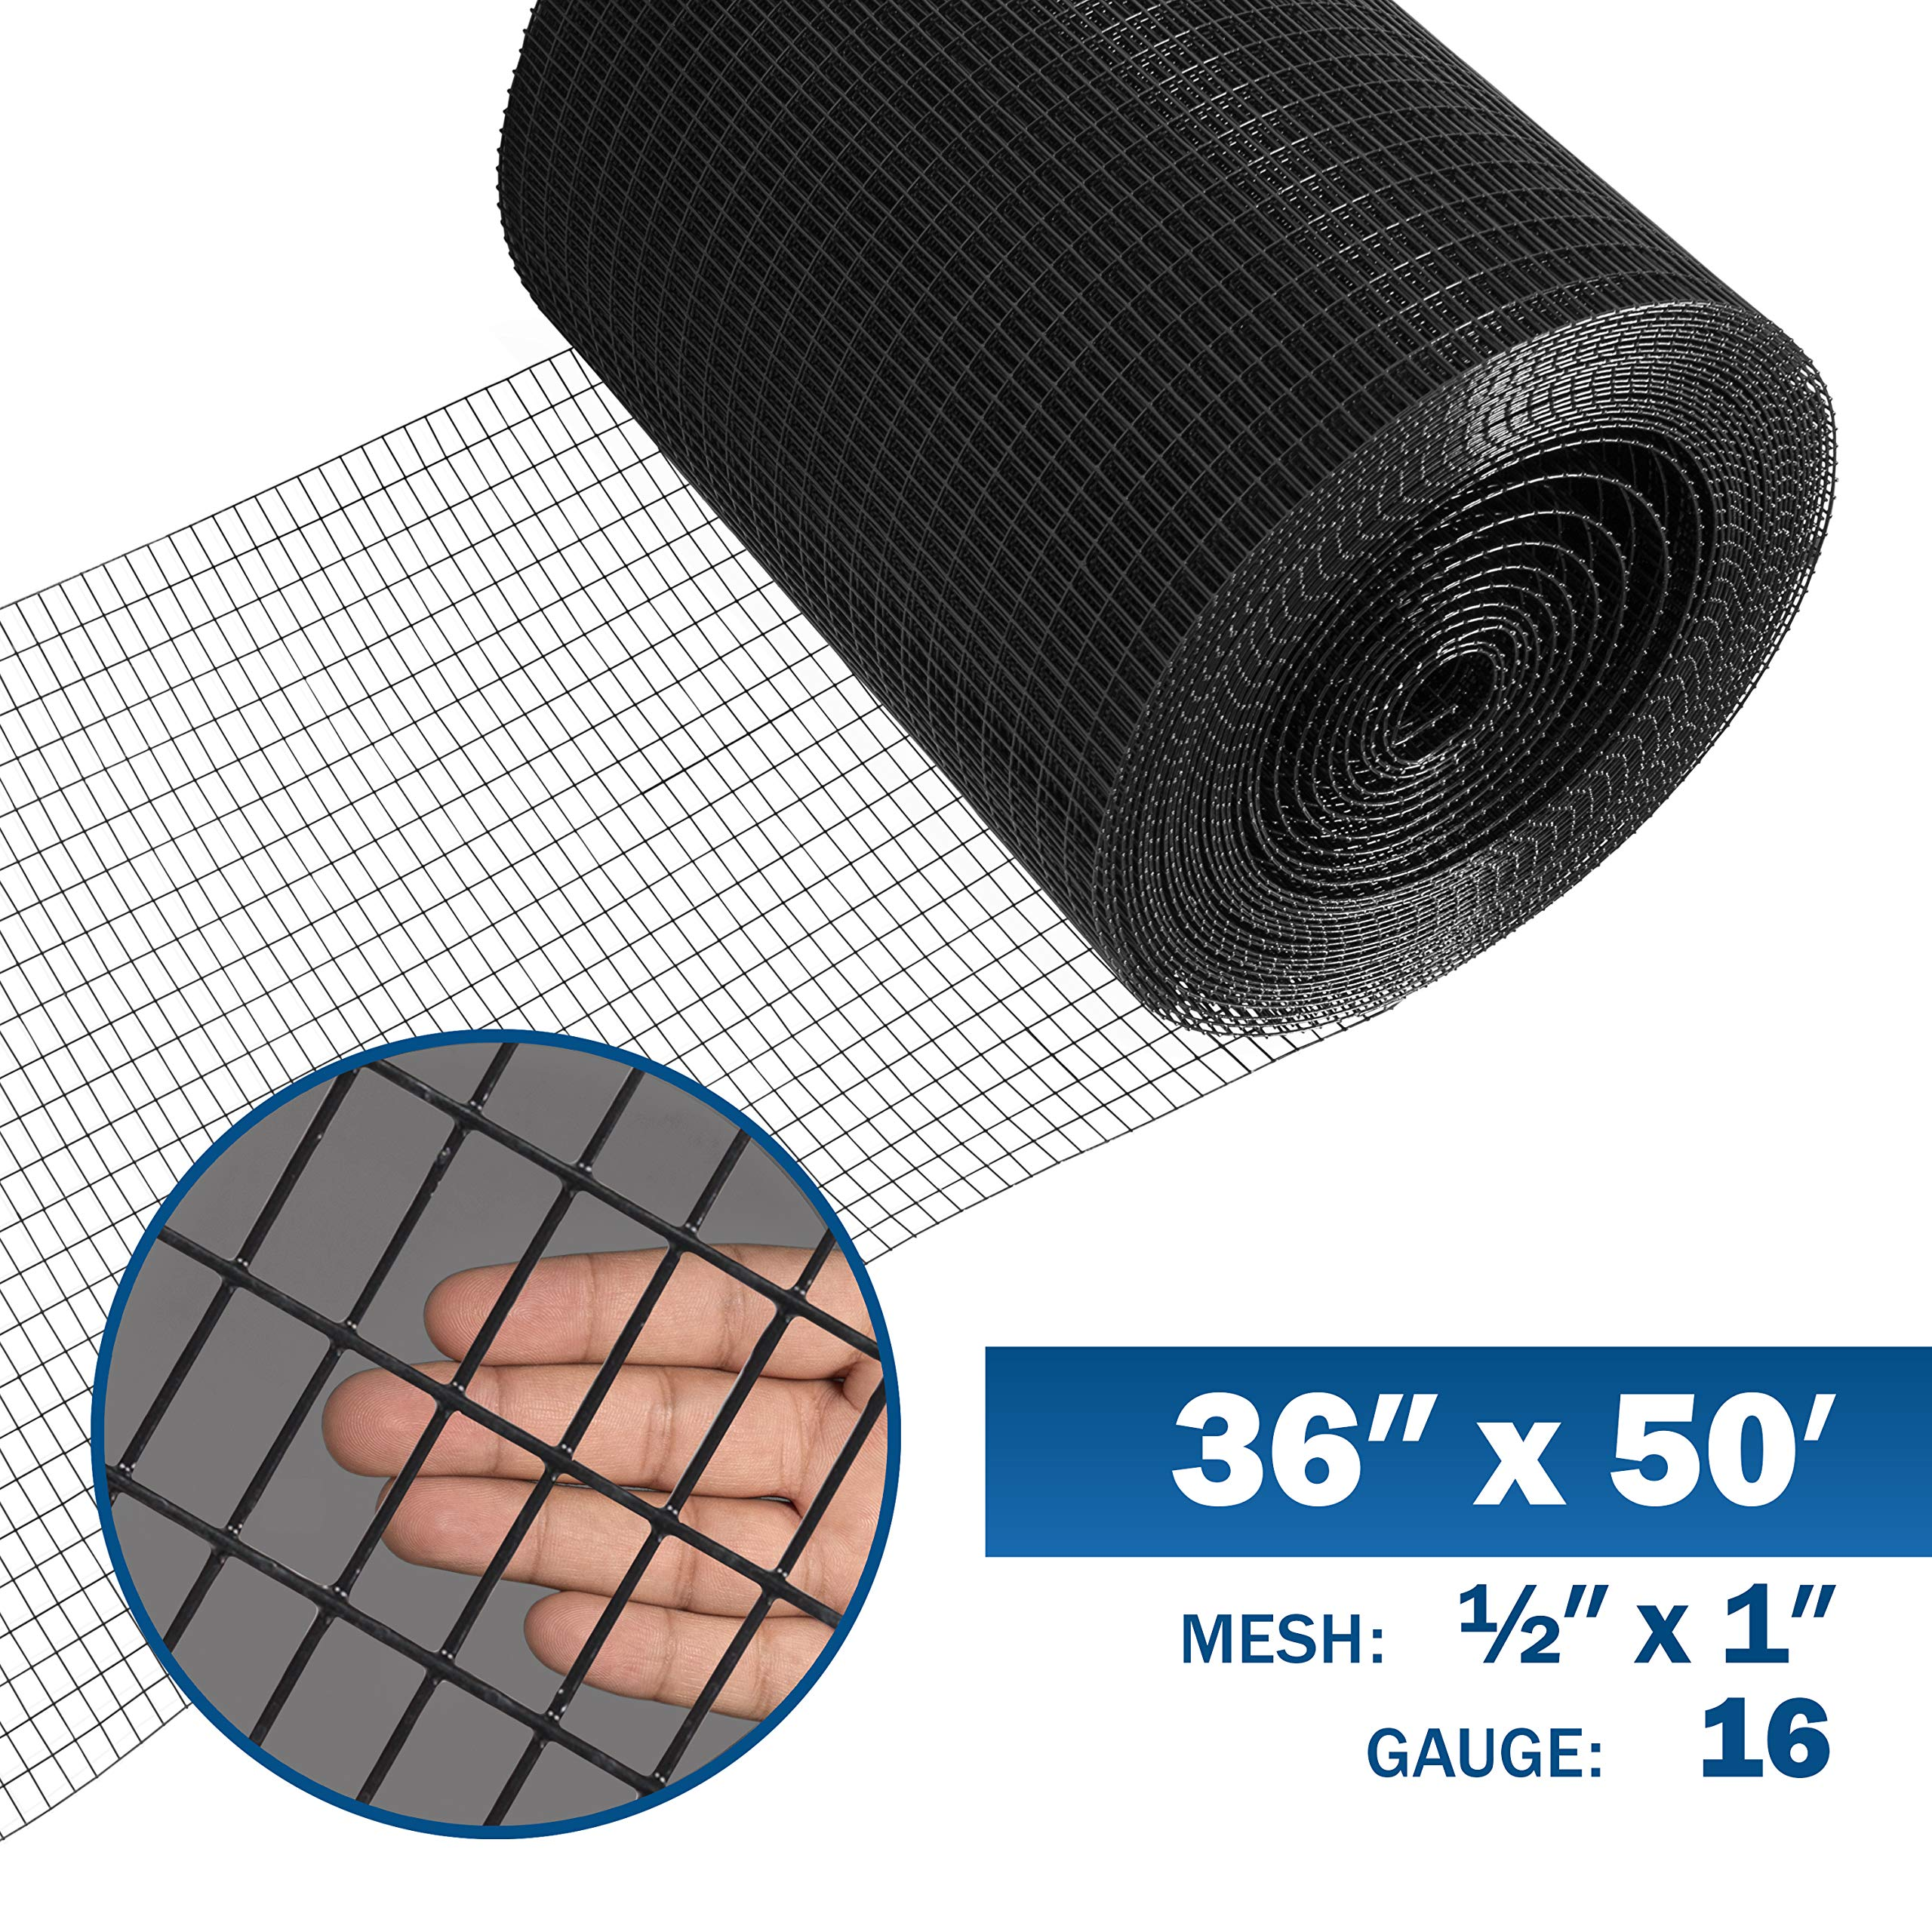 Fencer Wire 16 Gauge Black Vinyl Coated Welded Wire Mesh Size 0.5 inch by 1 inch (3 ft. x 50 ft.) by Fencer Wire